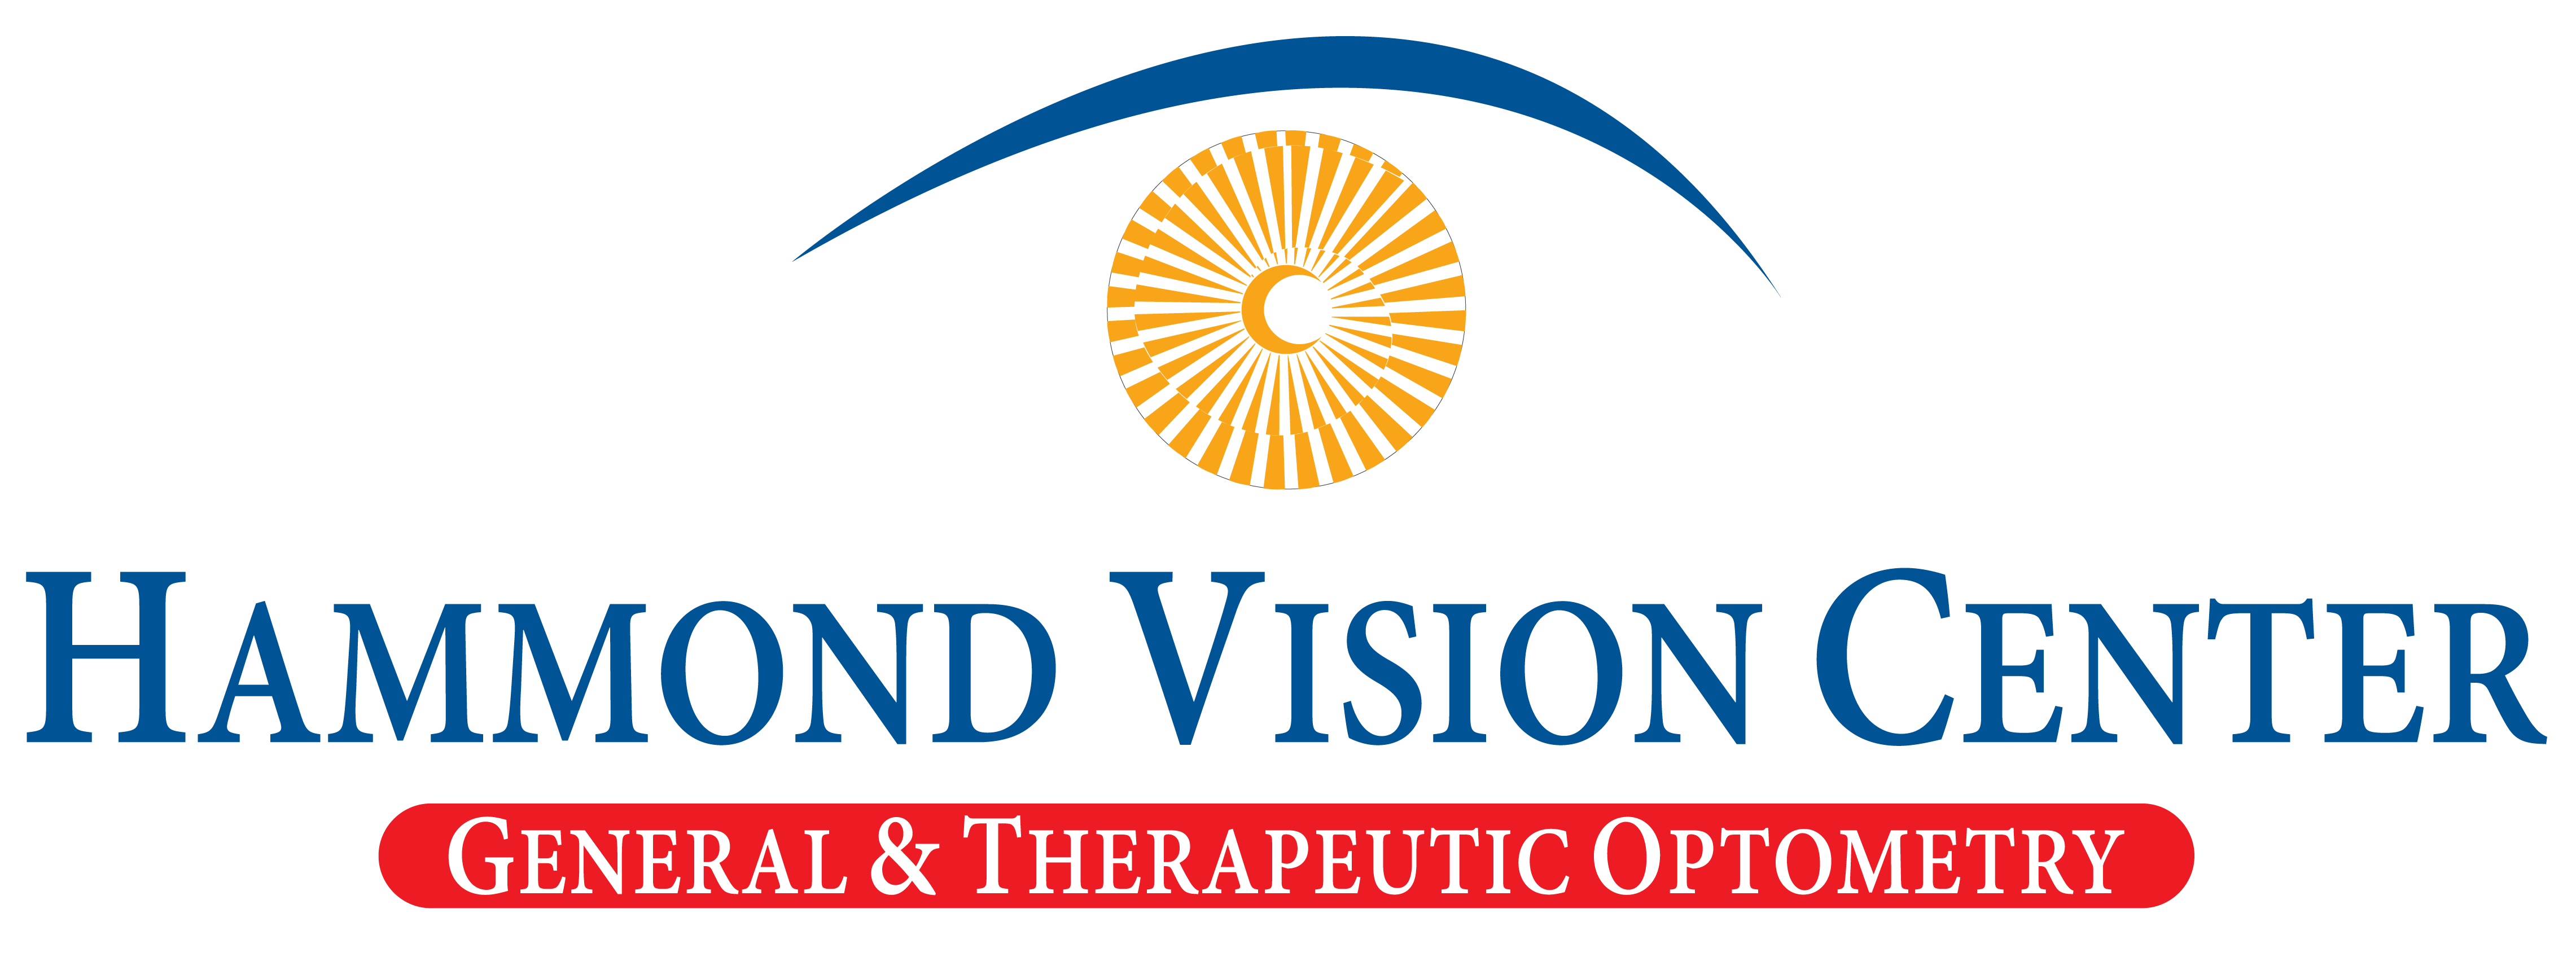 Hammond Vision Center